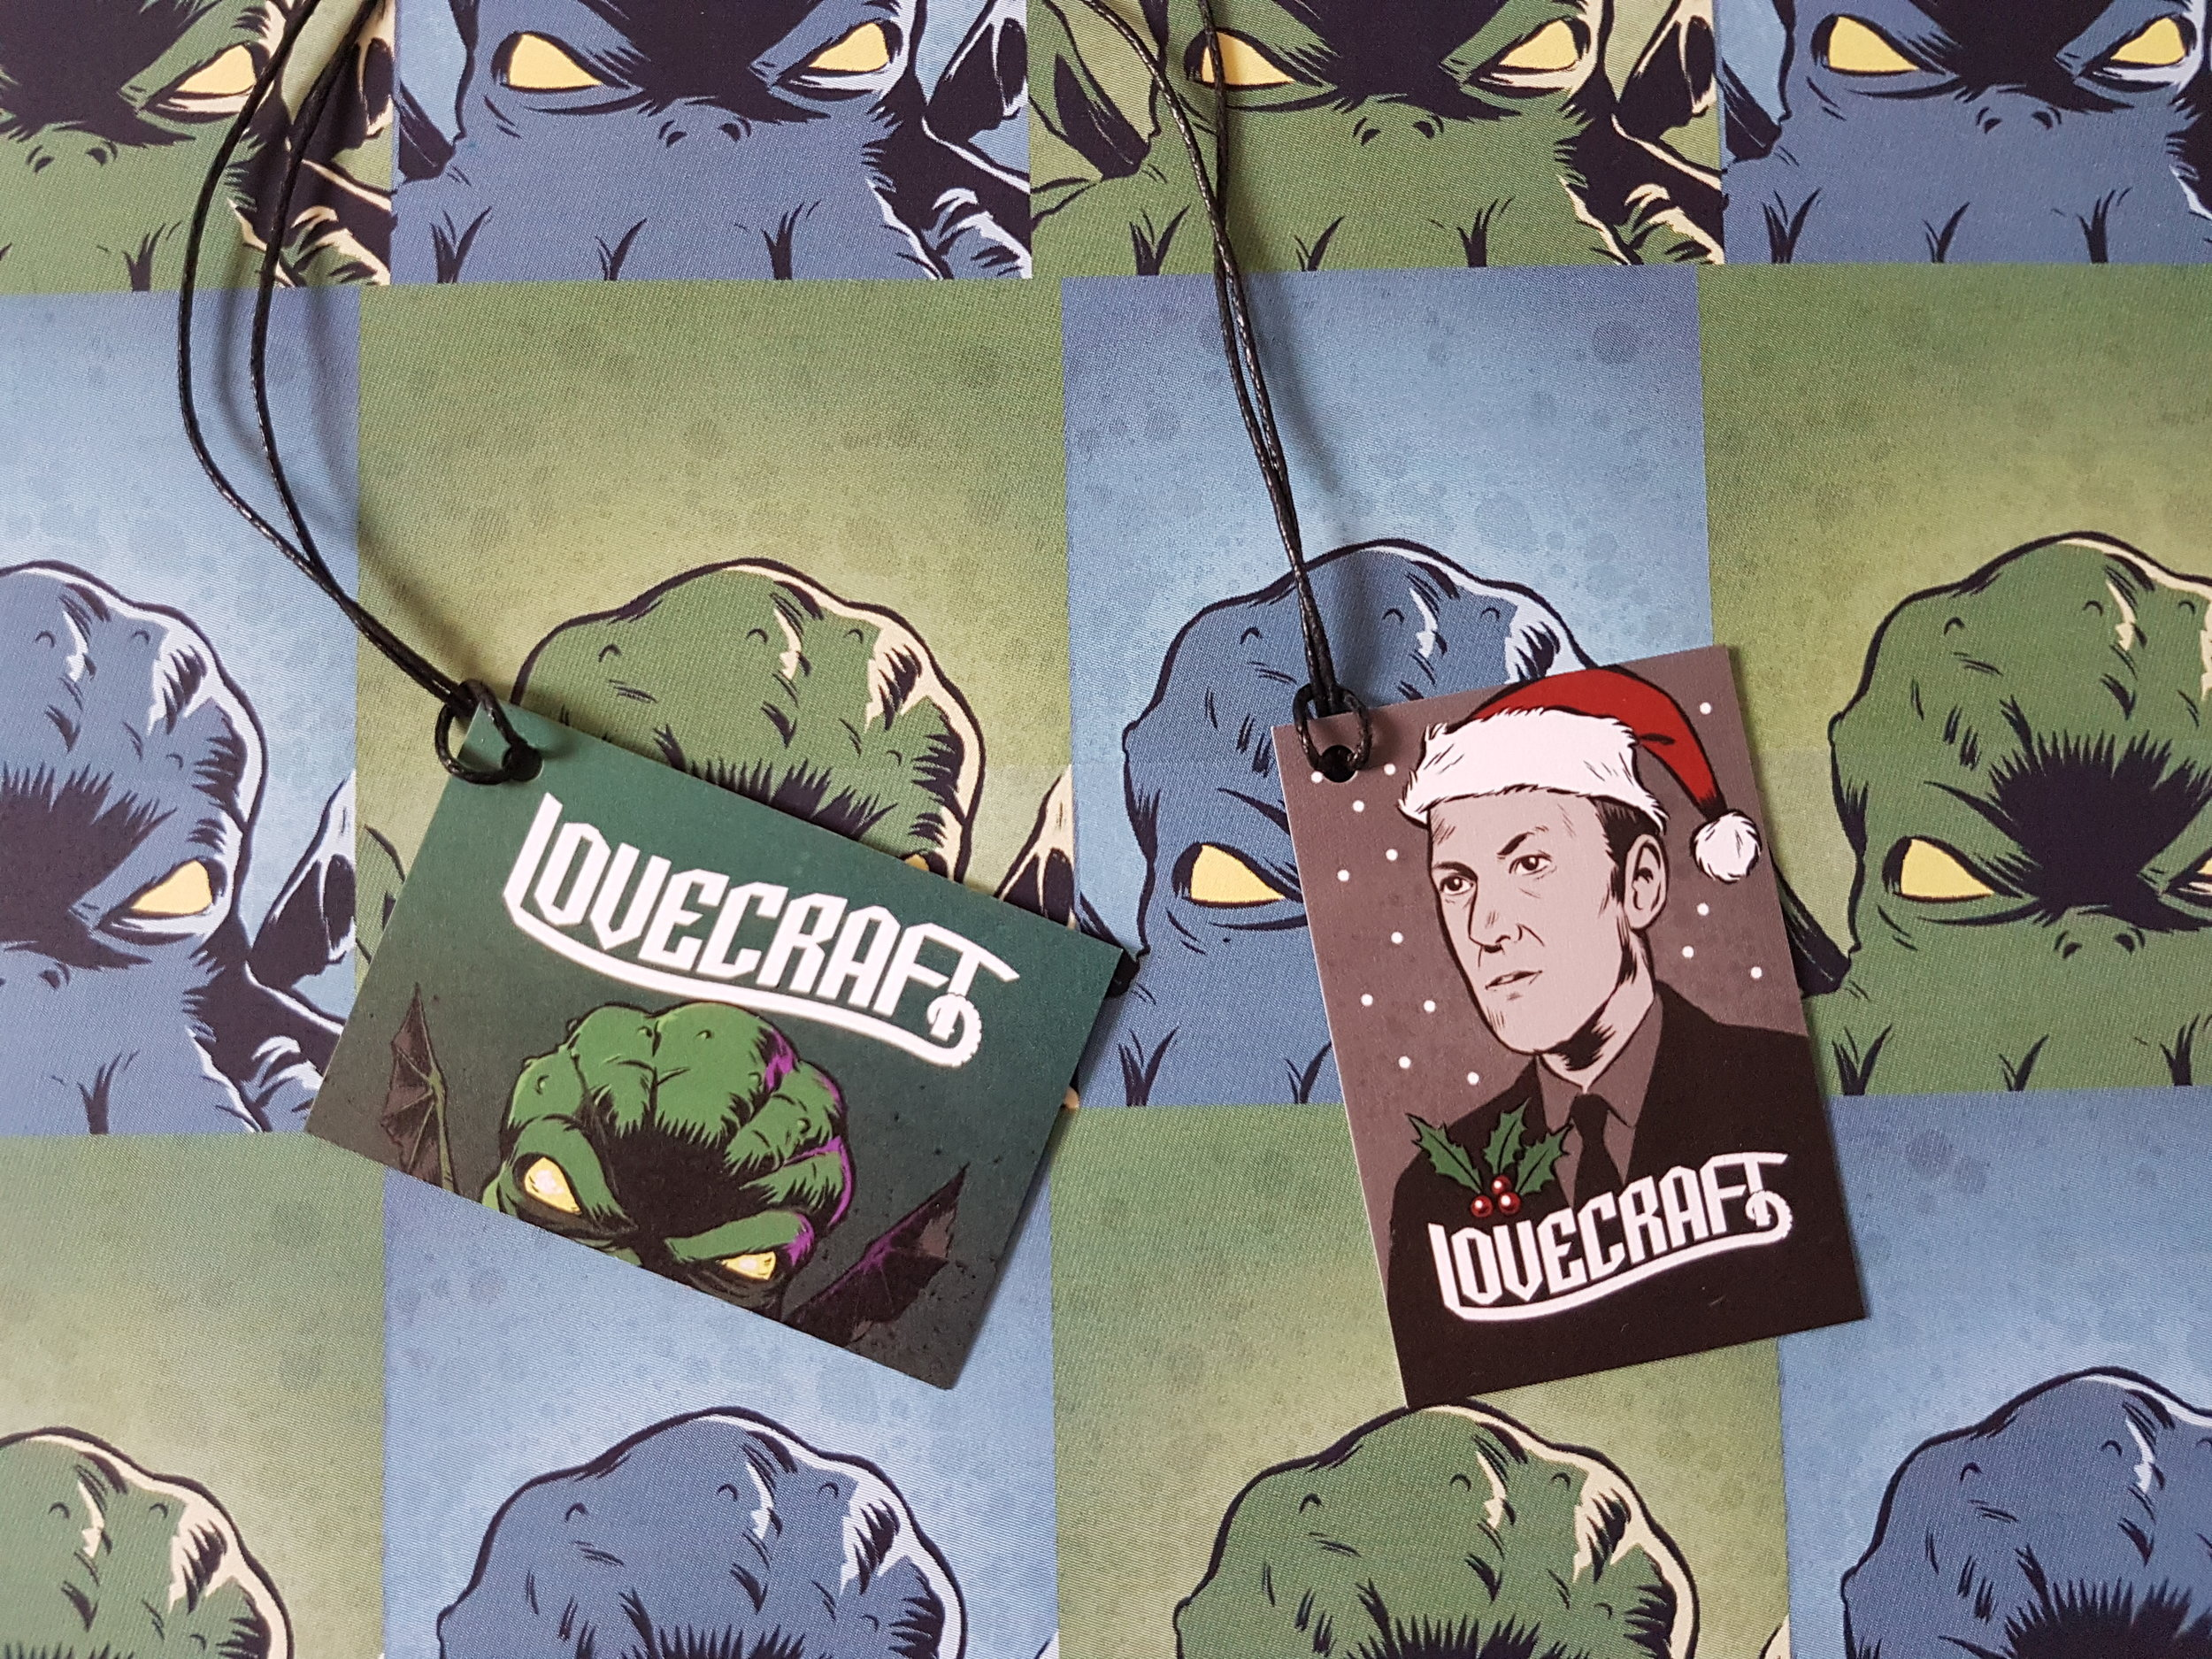 The gift tags